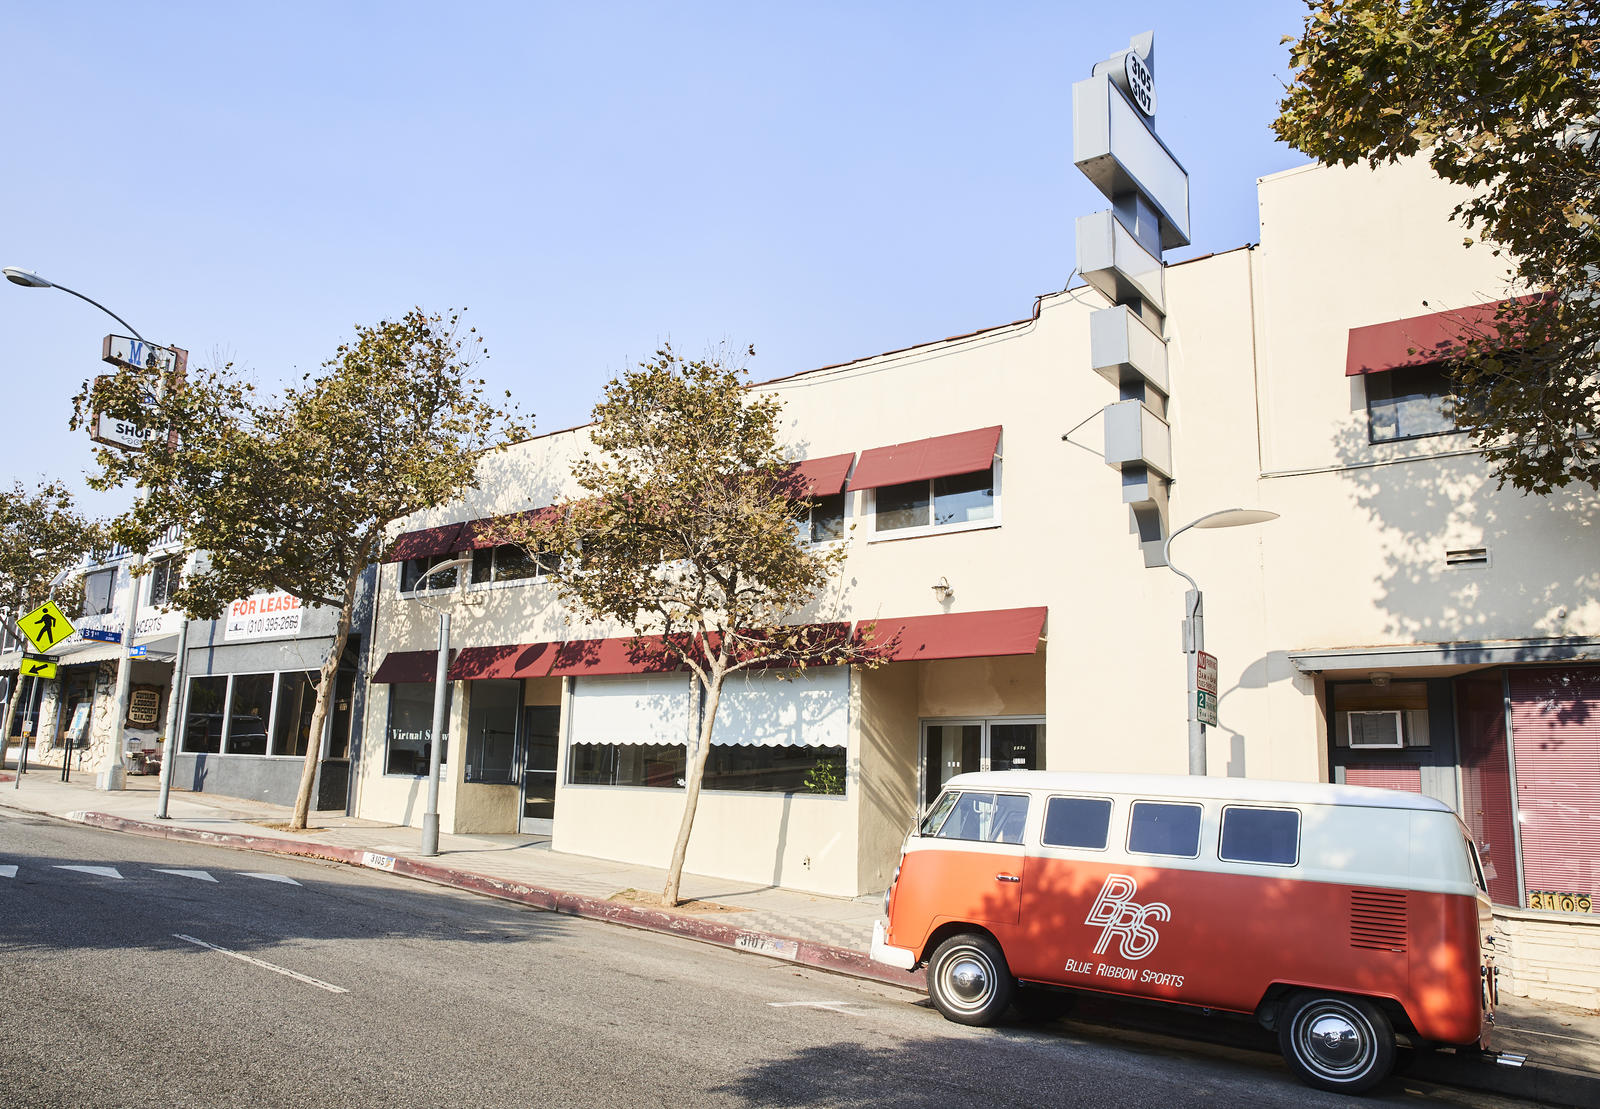 Runner's Reprise: Nike's Original Door Reopens in Santa Monica 2